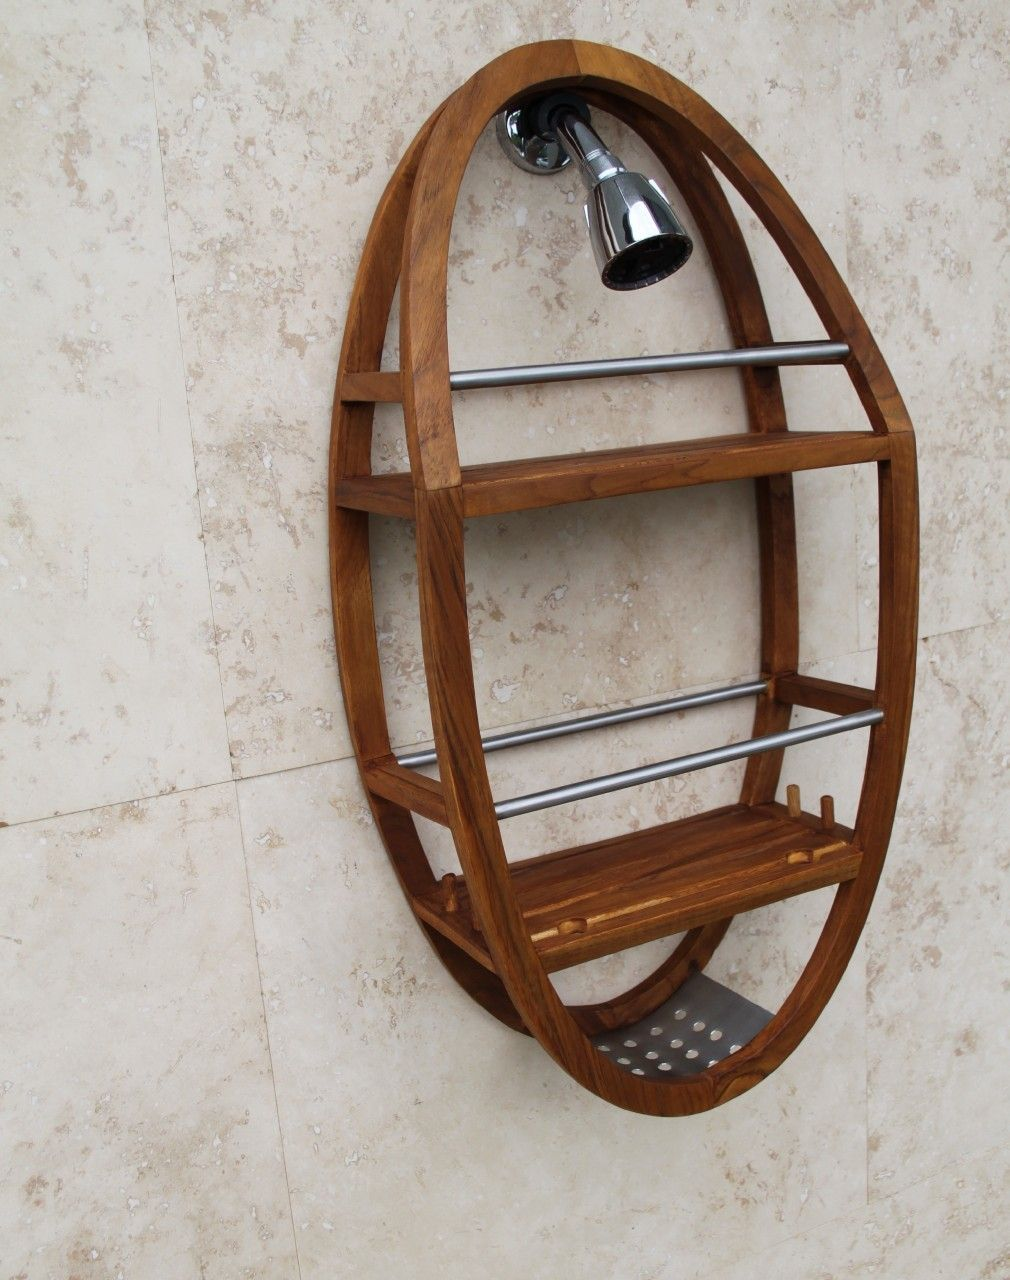 The Original Moa Teak Stainless Shower Organizer Teak Shower Shelf Shower Organization Teak Shower